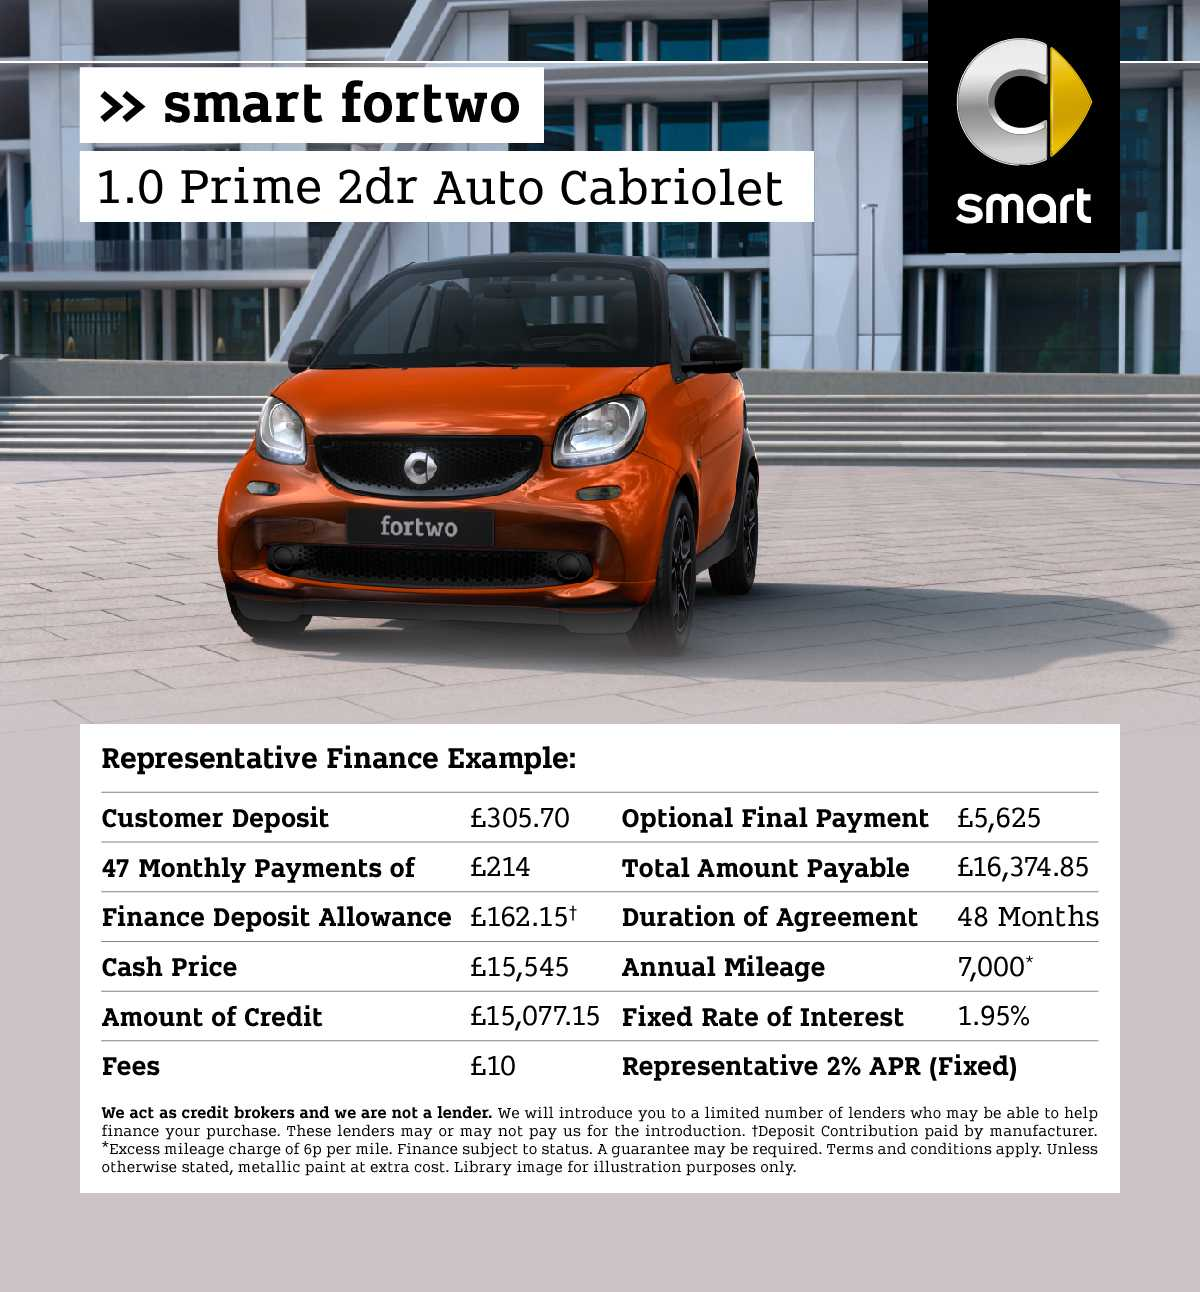 [smart fortwo] smart fortwo 1.0 Prime 2dr Auto Petrol Cabriolet 170719 Banner 1